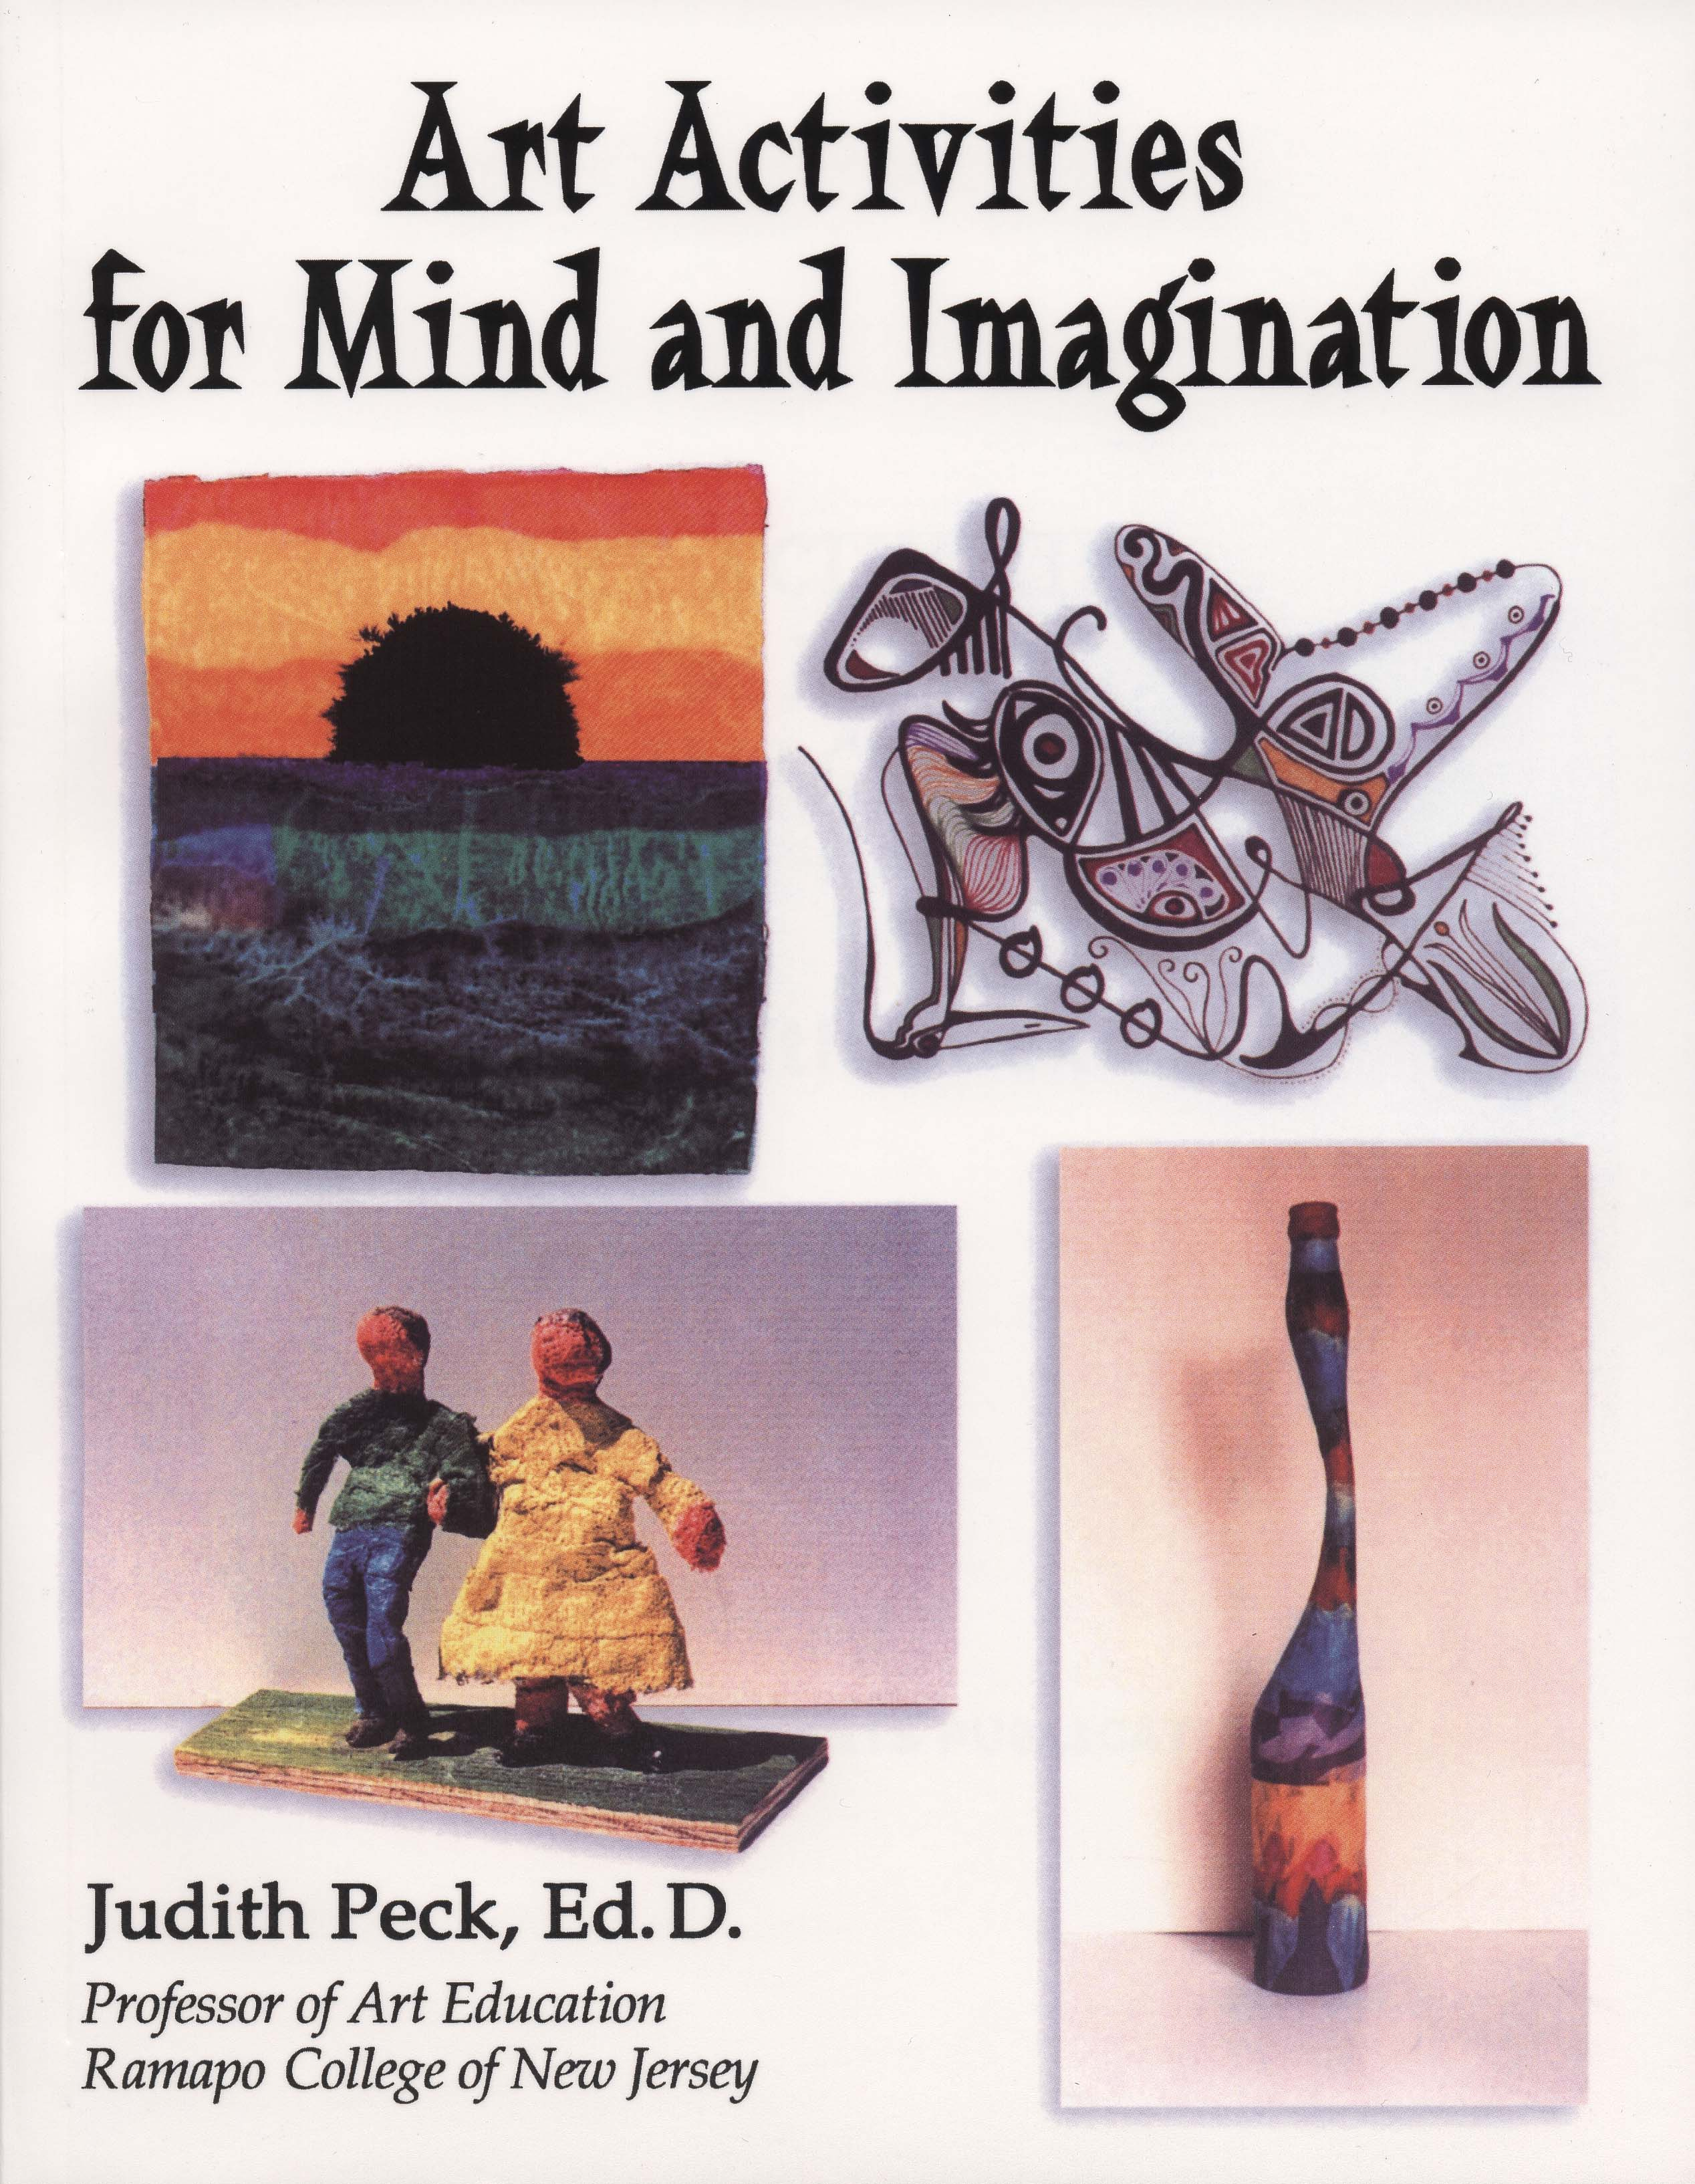 Art Activities for Mind and Imagination